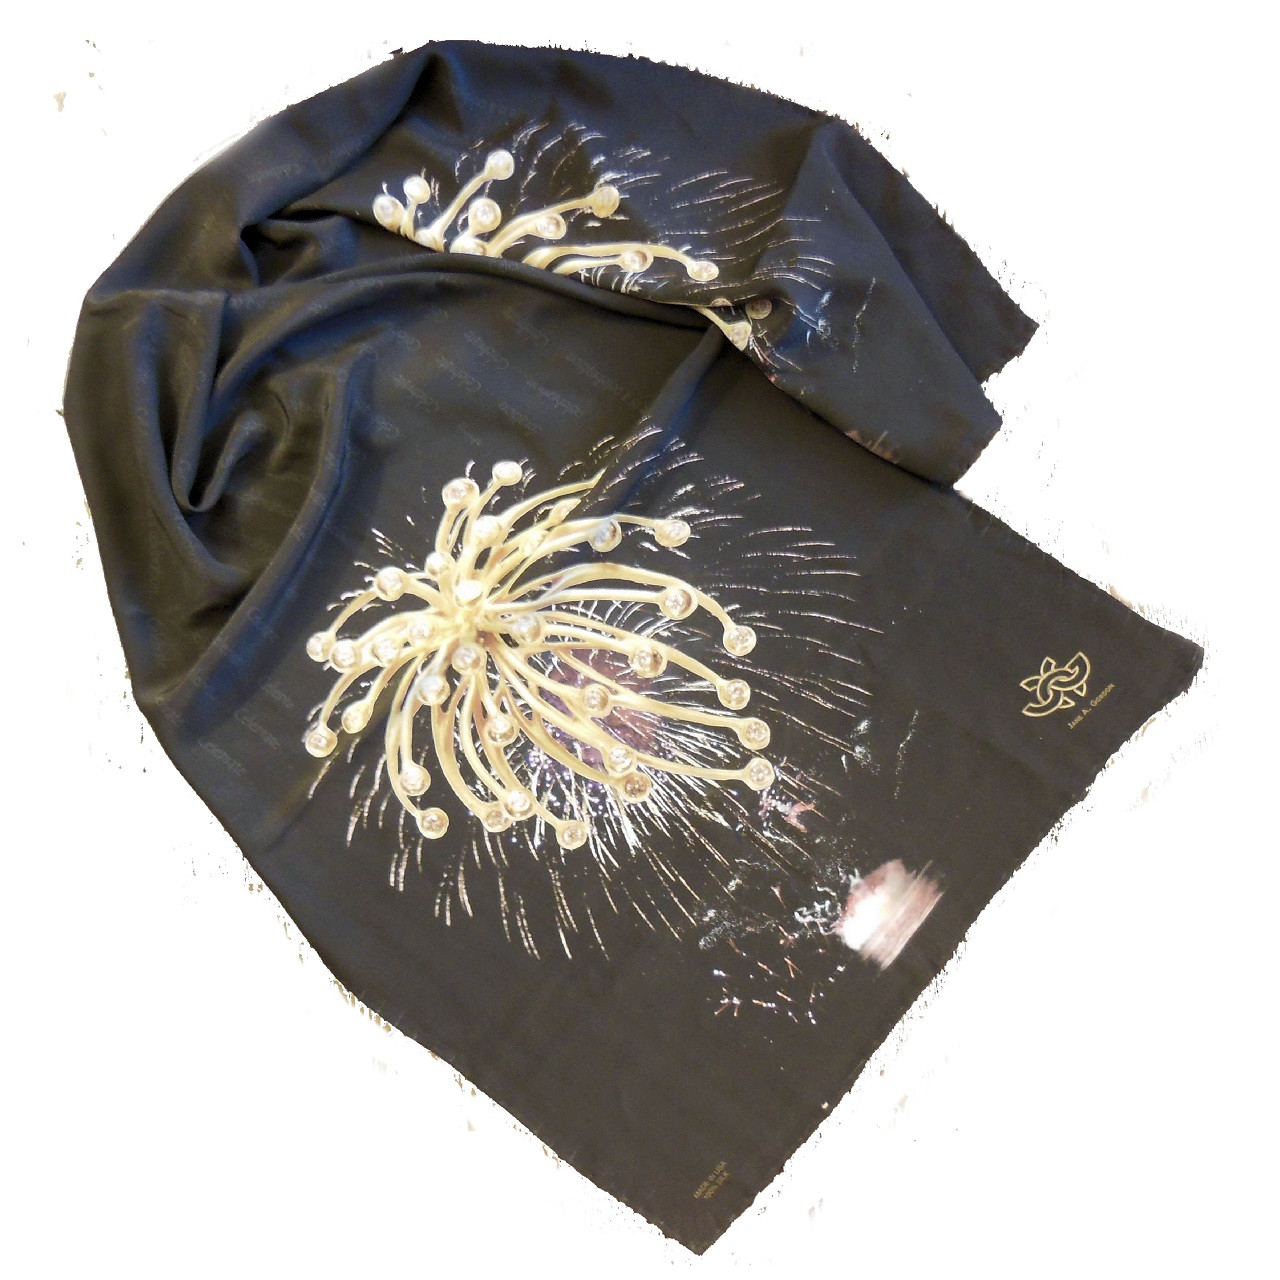 Silk Scarf on the night sky featuring the Superstar Fireworks pendant necklace, showing whole scarf a little crumpled